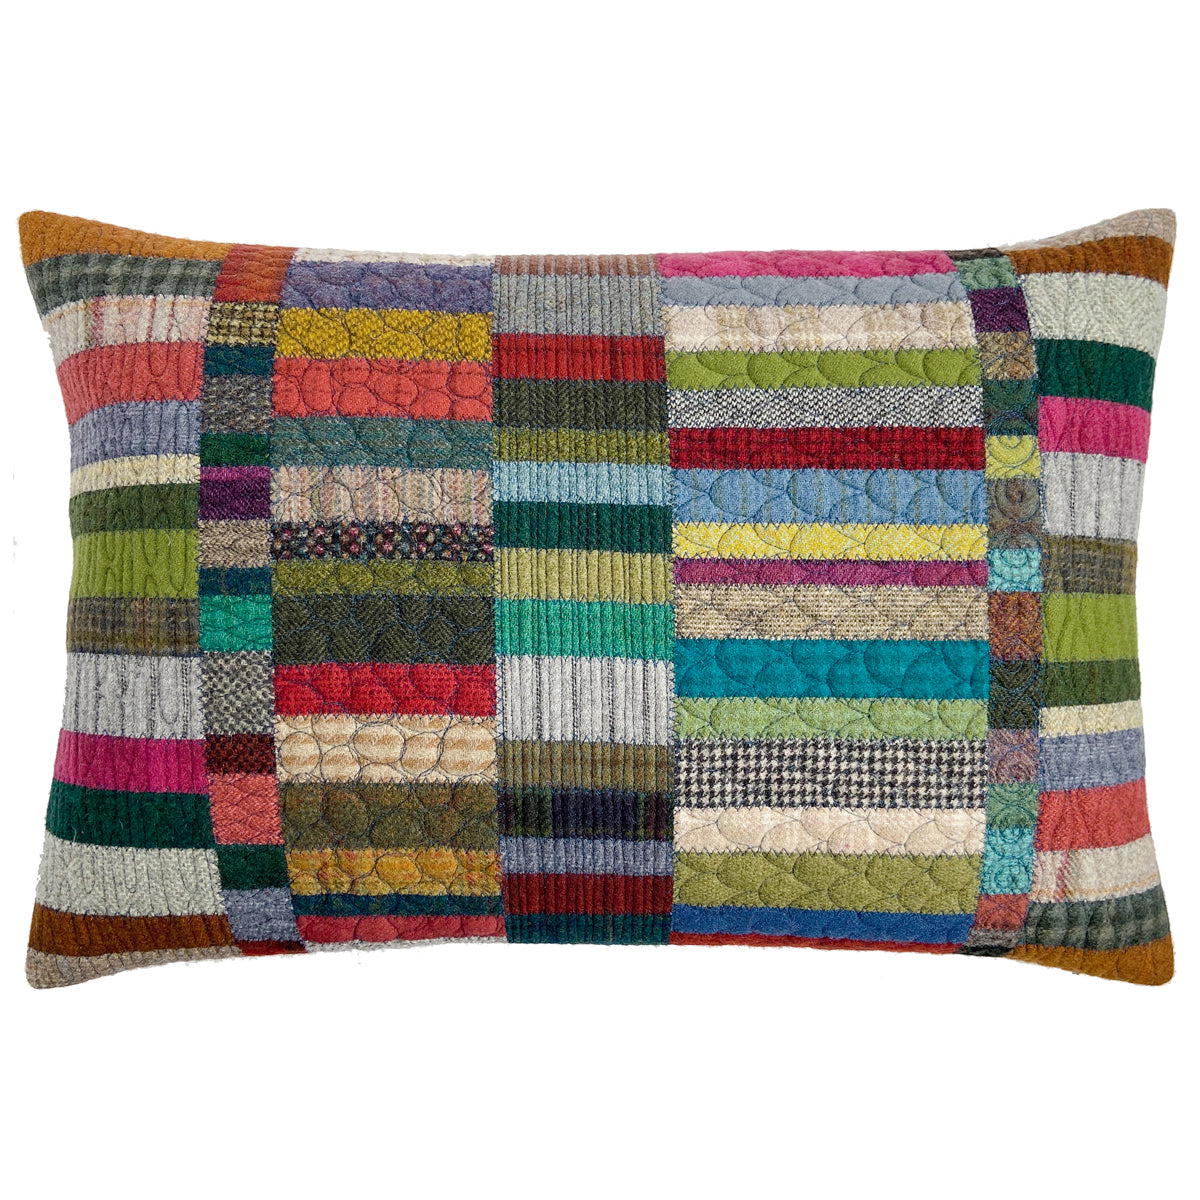 George Street Cushion • 15x22 C